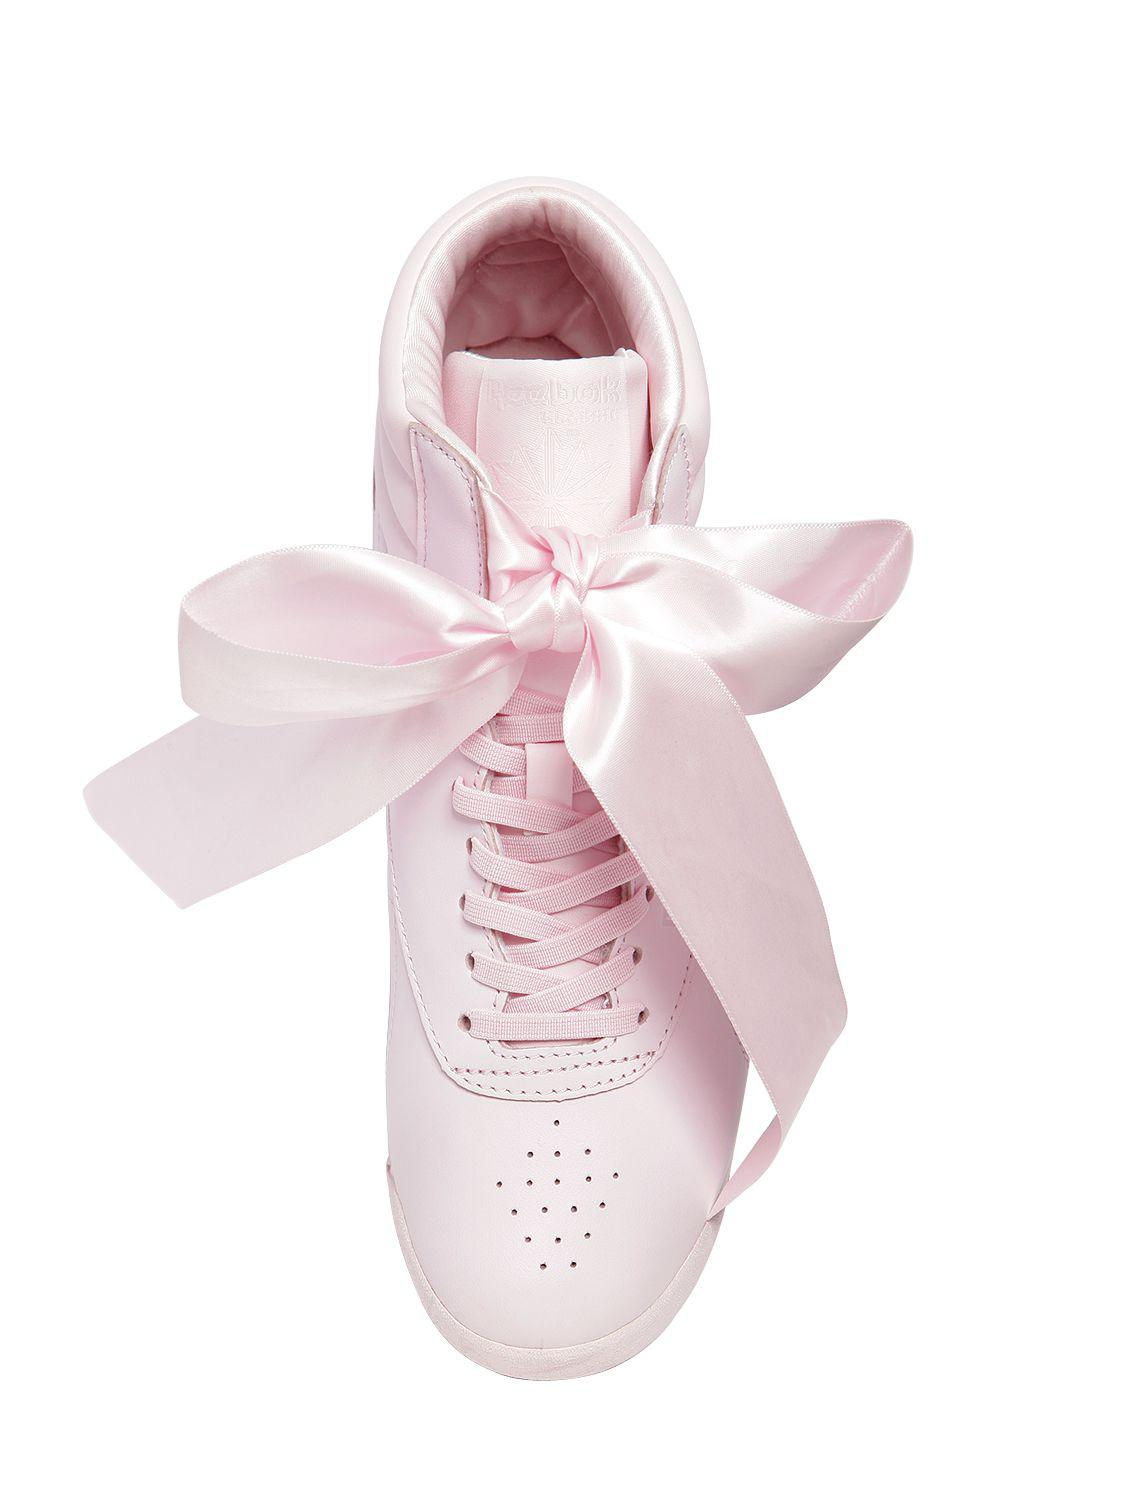 Reebok Freestyle Bow Leather High Top Sneakers in Pink